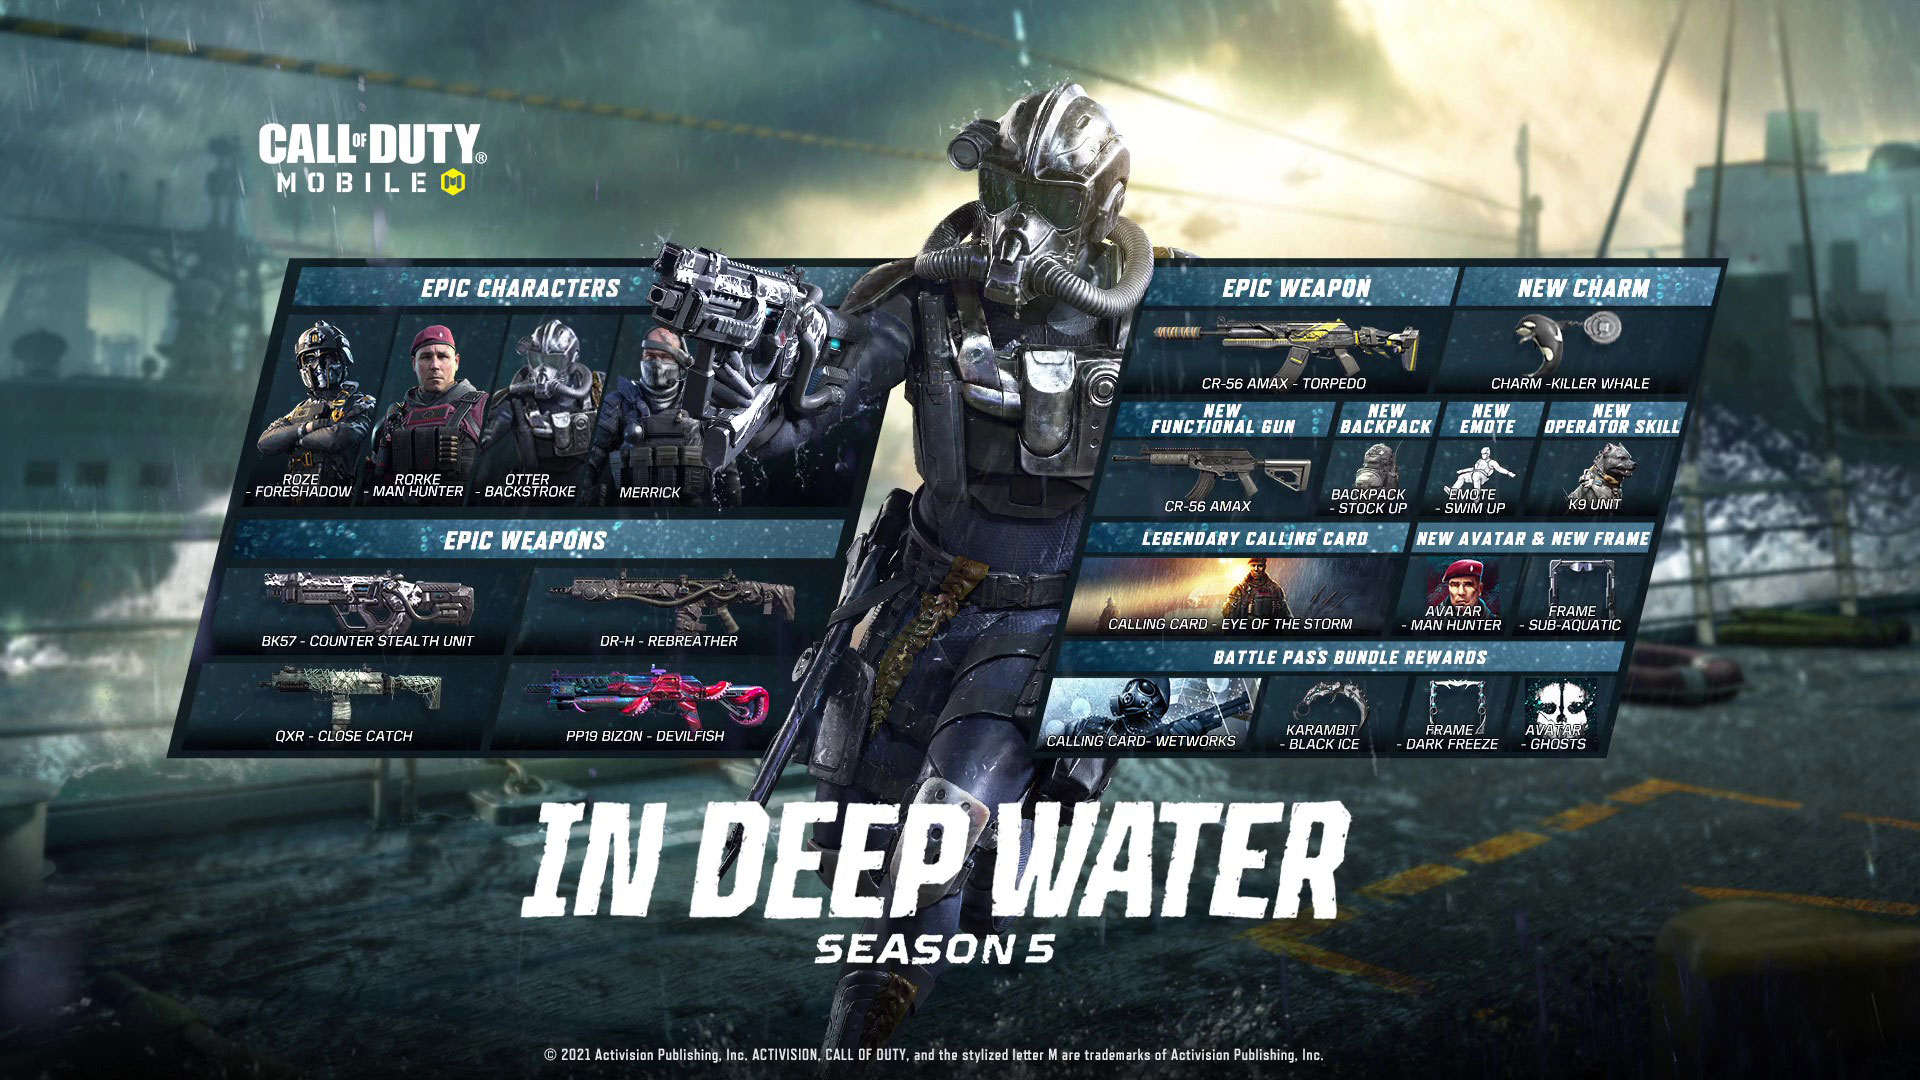 CALL OF DUTY MOBILE Season 5 In Deep Water coming on June 28